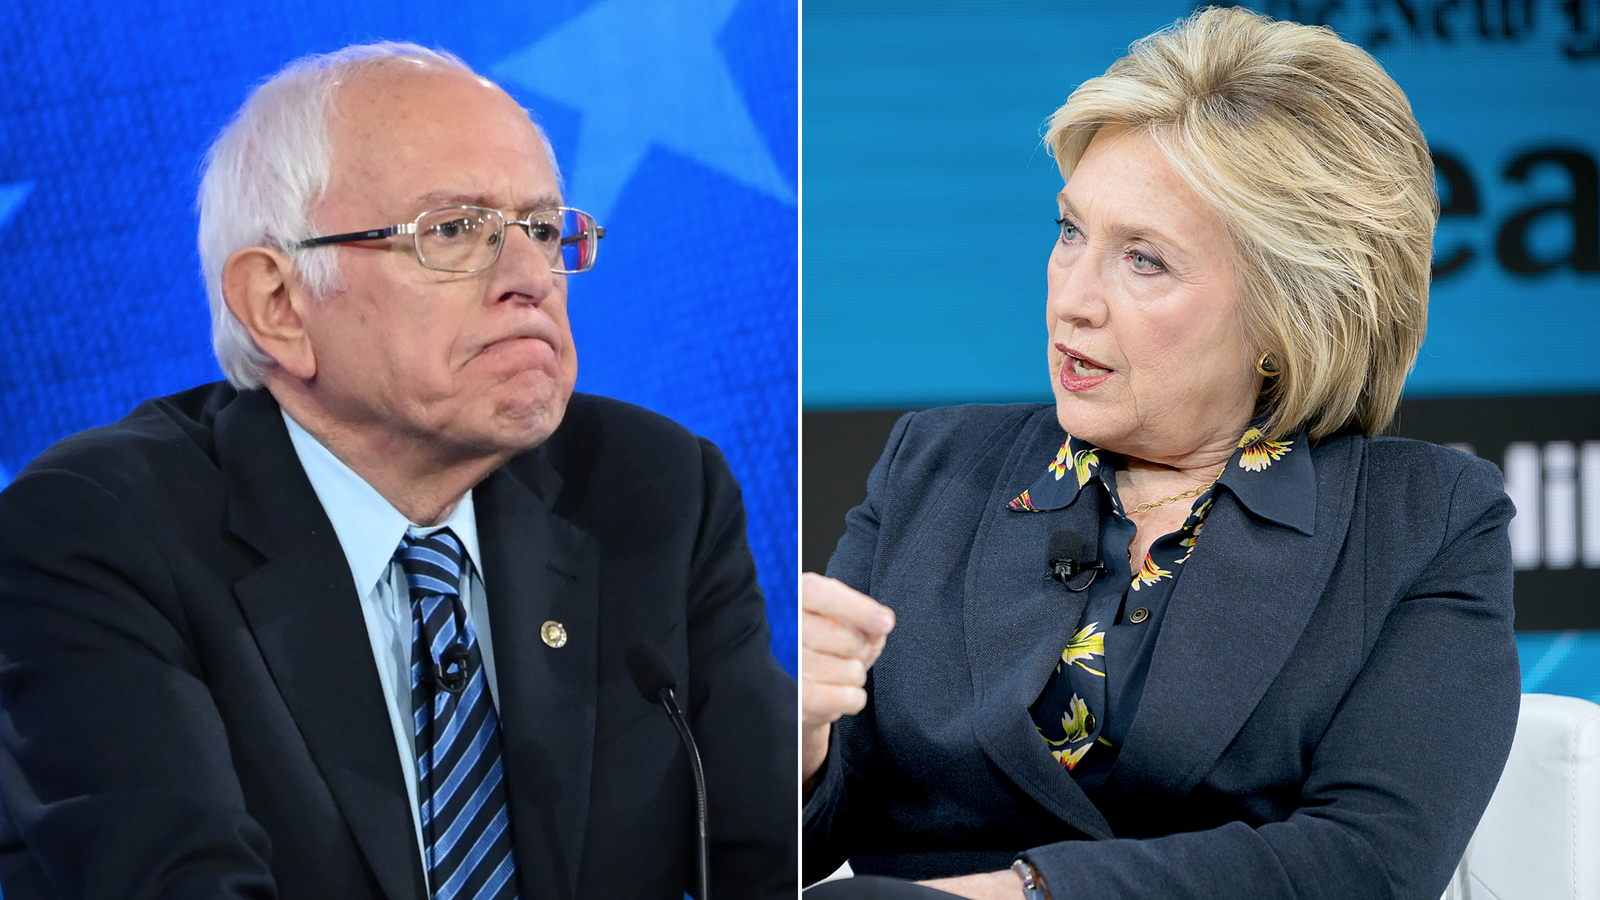 Sanders reacts to Clinton's attacks on him: 'Not the kind of rhetoric that we need'